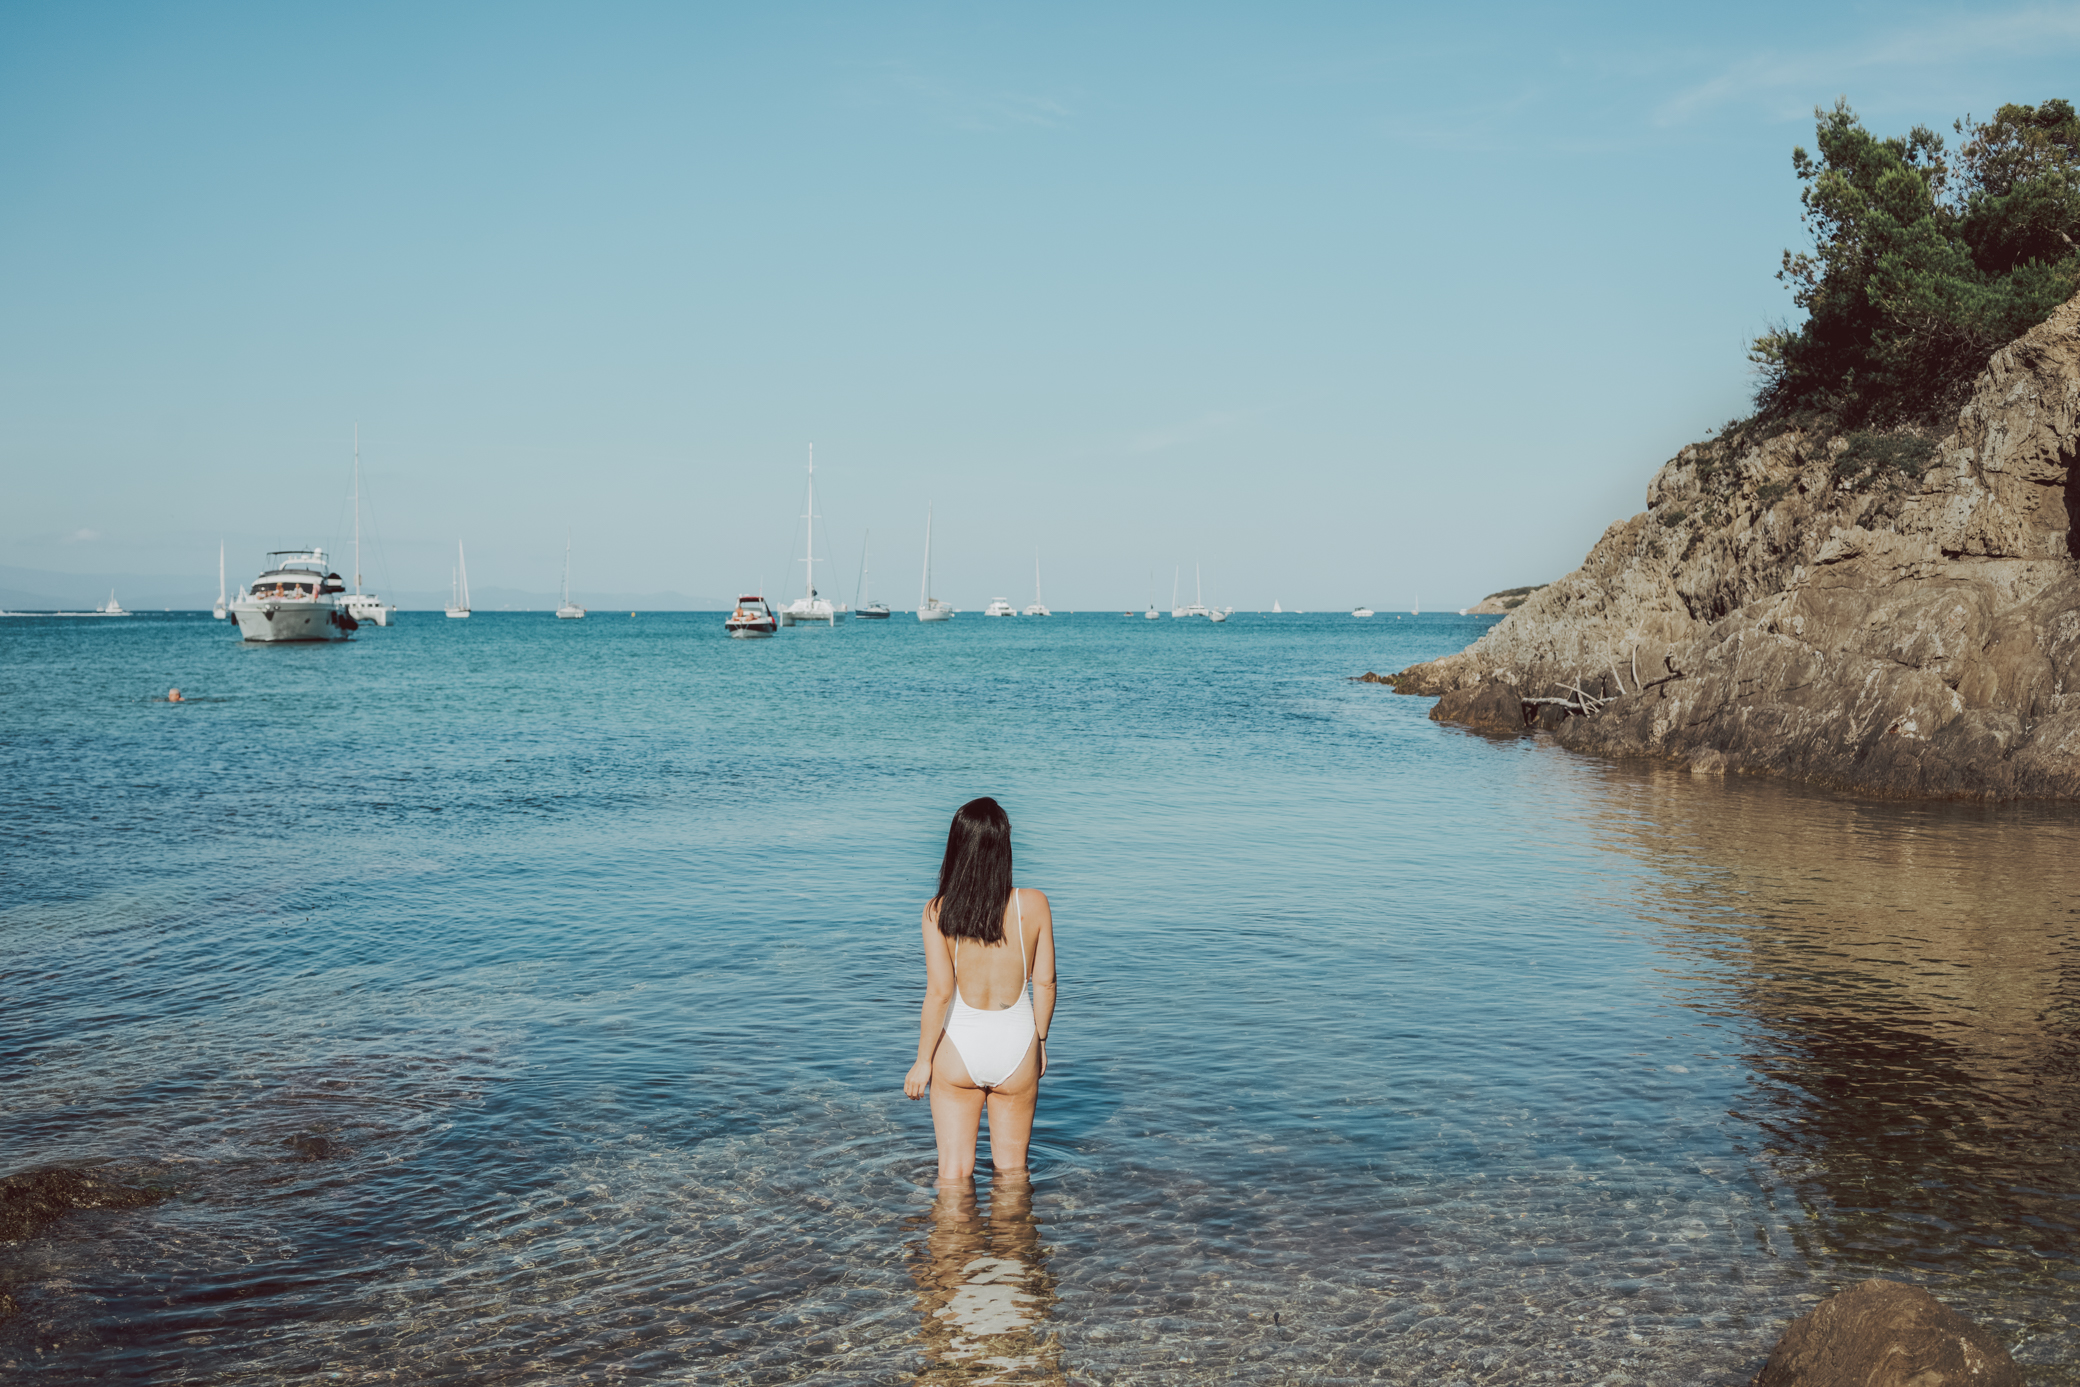 Beach Giens Things to do in Hyeres South of France - French Rivera #France #Provence #FrenchRivera #CotedAzur